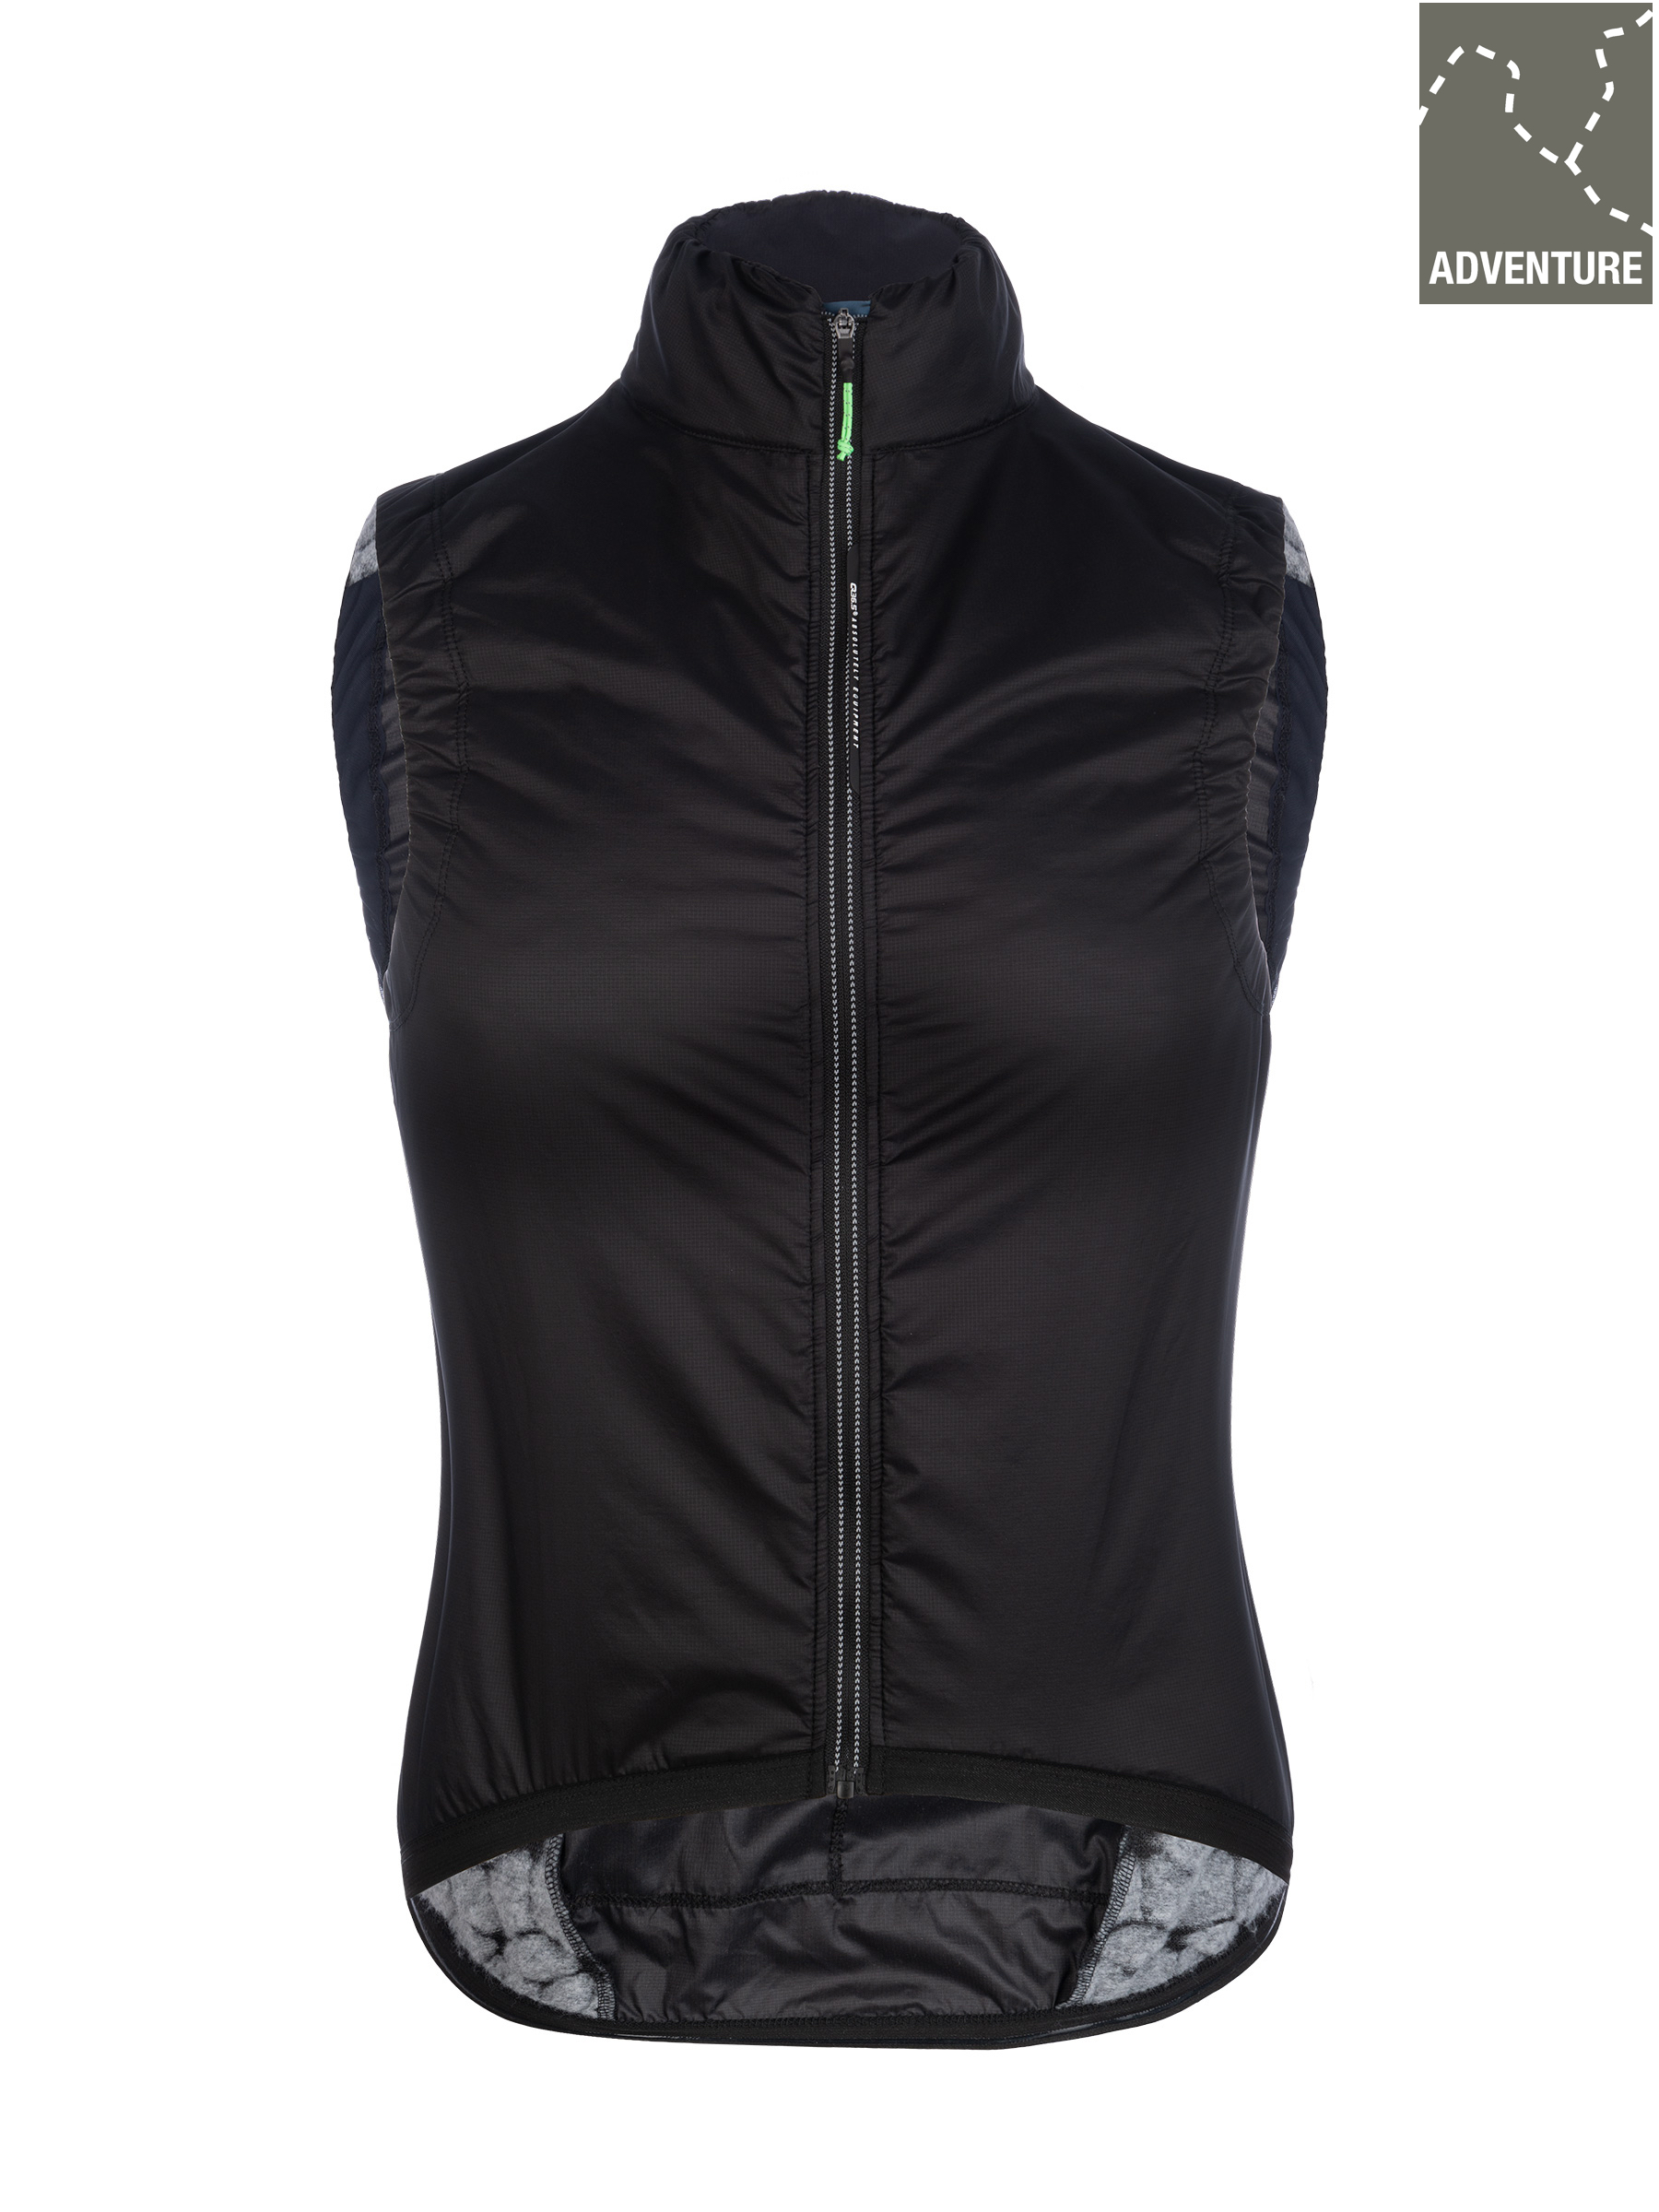 Gilet ciclismo donna Adventure Insulation Lady Q36.5 - nero - 061W.2